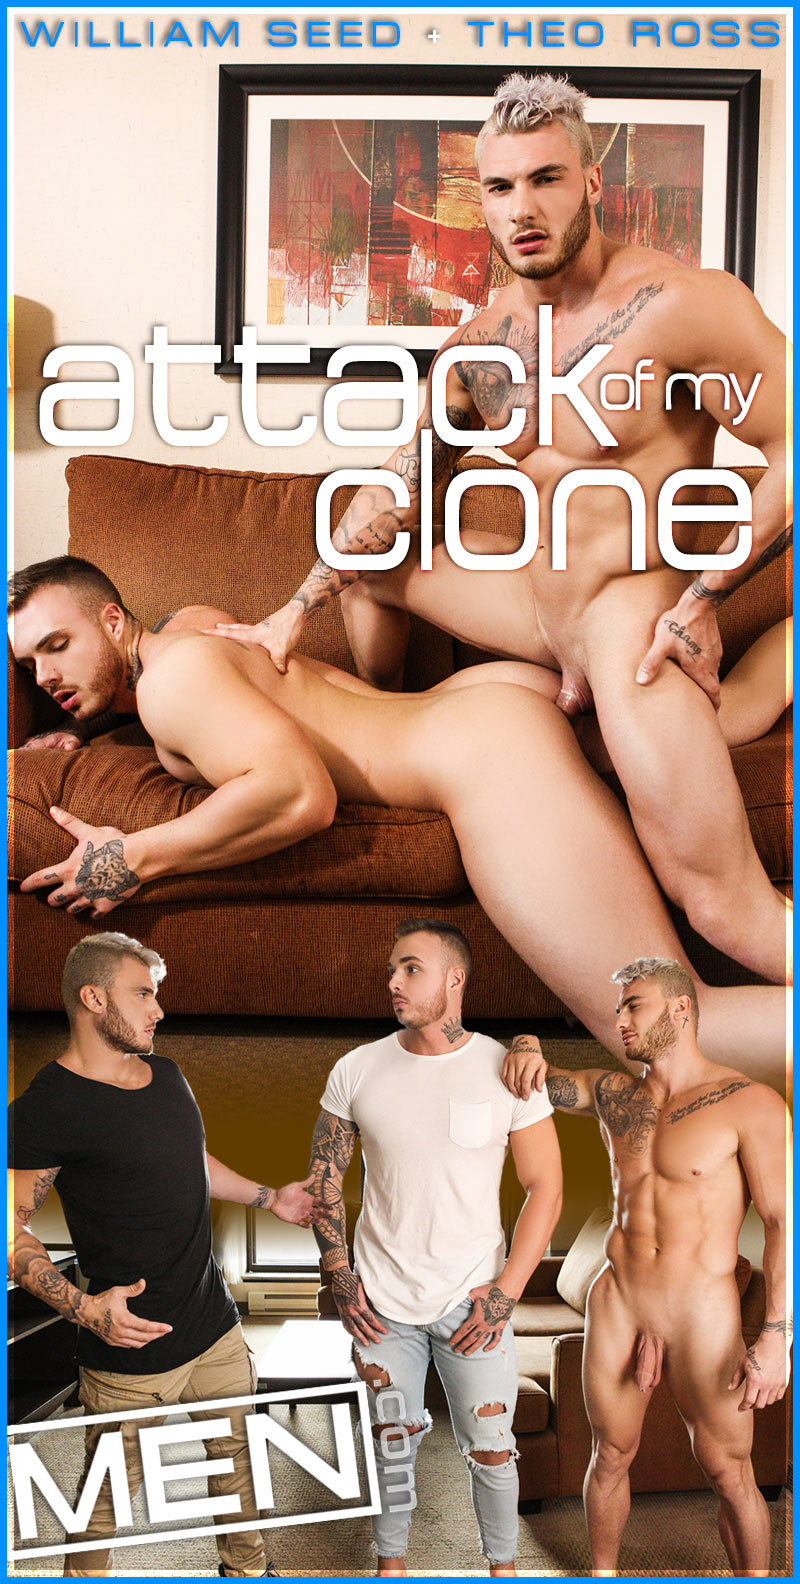 Attack of My Clone, Part Three (William Seed Fucks Theo Ross) at Drill My Hole